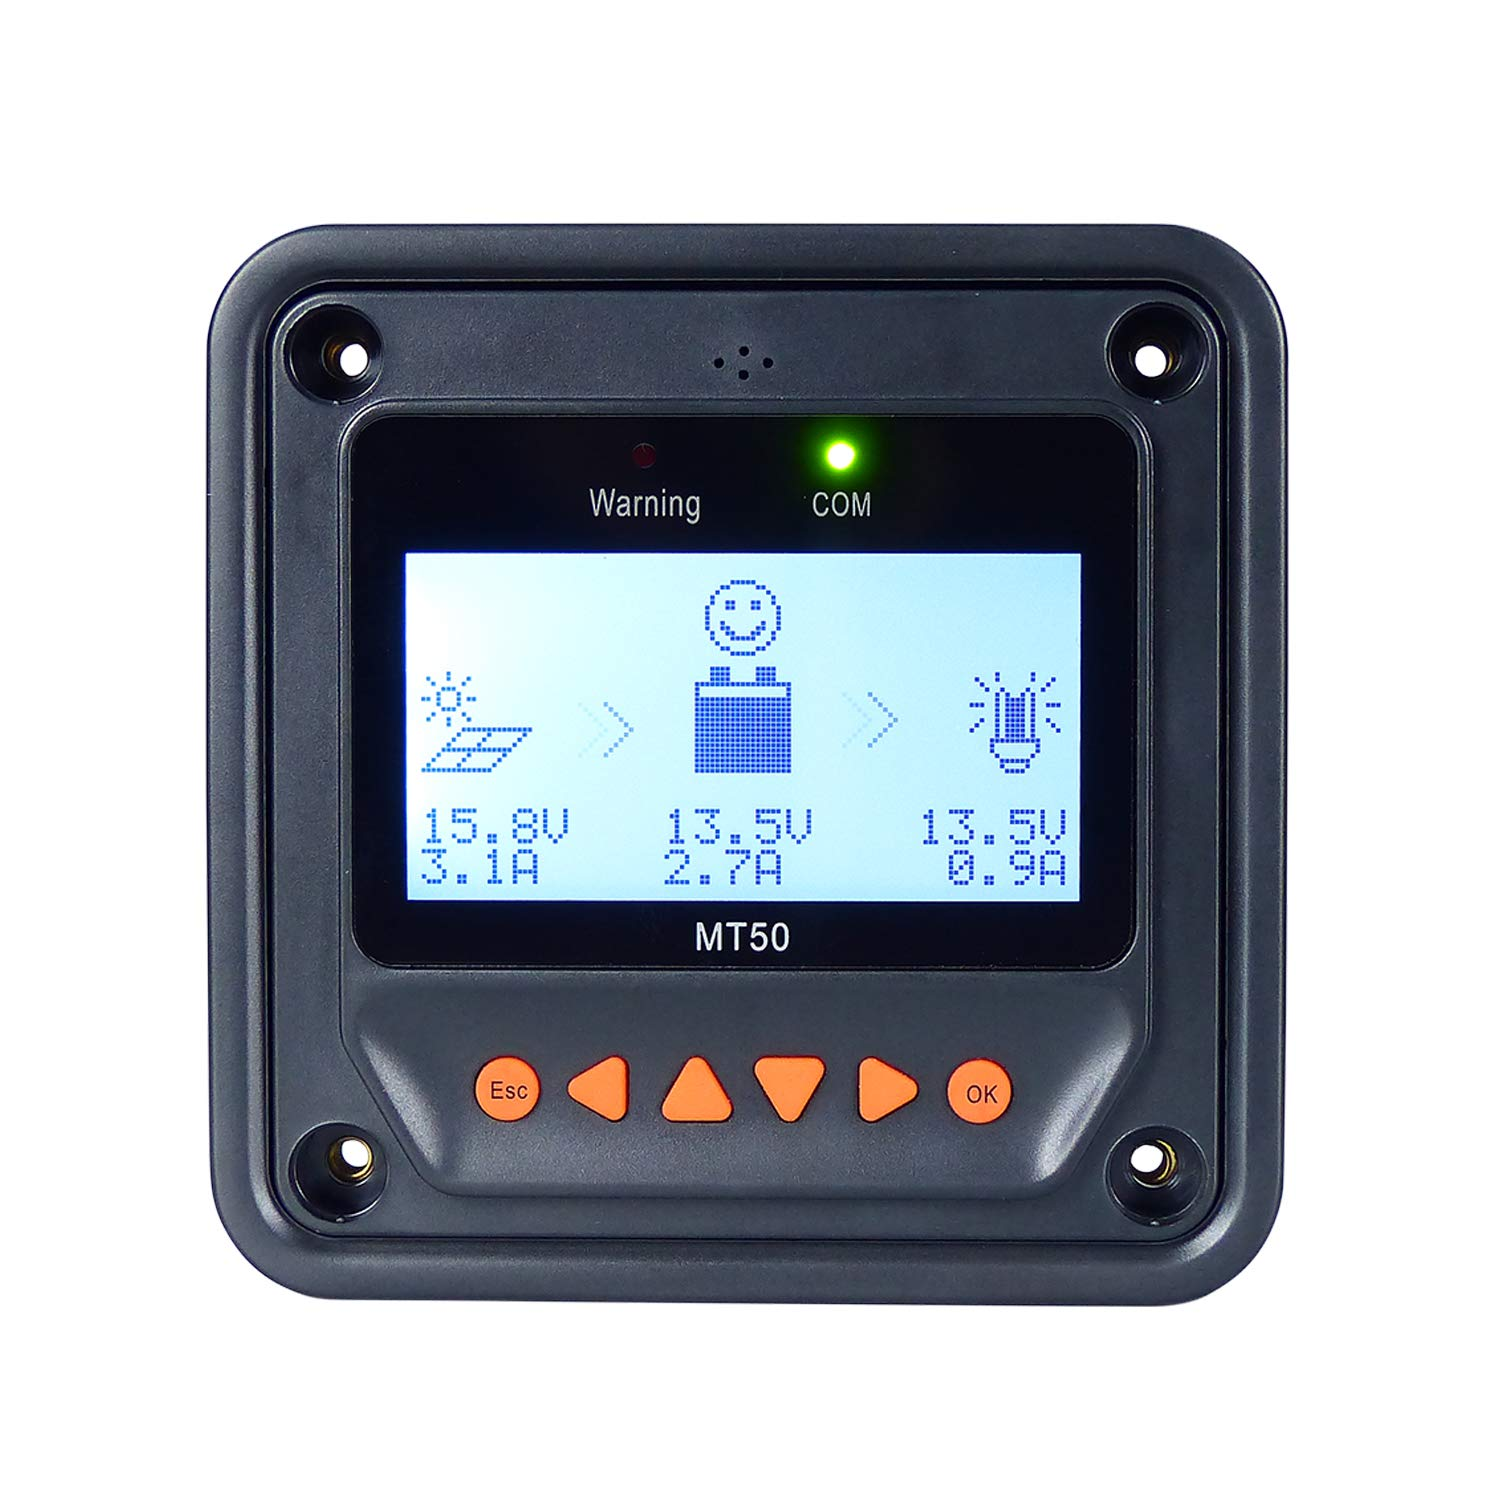 EPever Remote Meter MT50 for MPPT Solar Charge Controller LCD Display Monitoring Reading Datas Suitable for EPsolar Series Solar Regulator